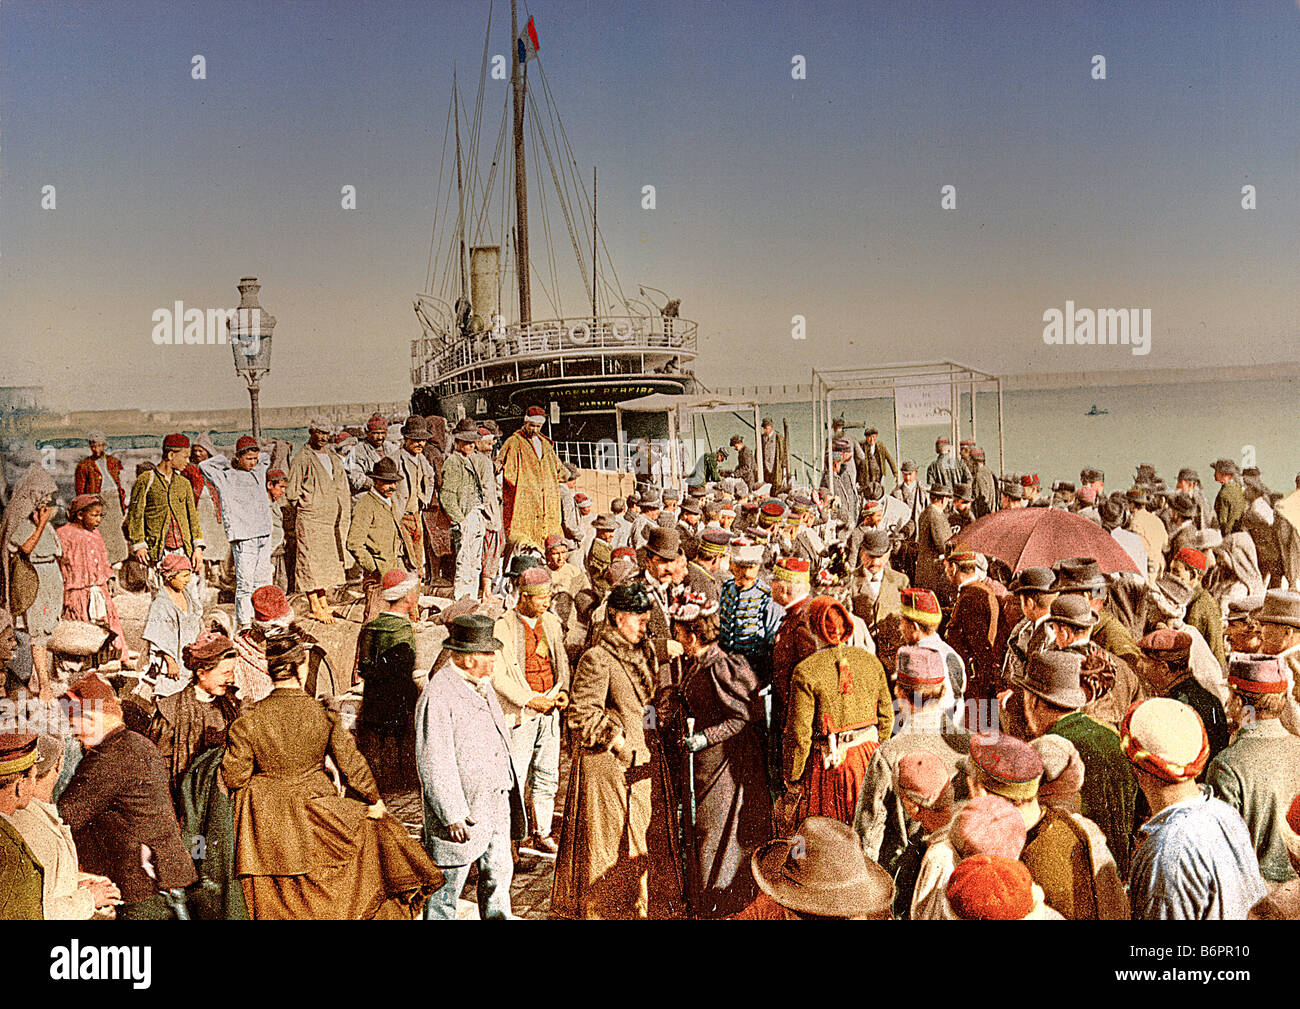 Arriving in Algier, Algeria - Stock Image